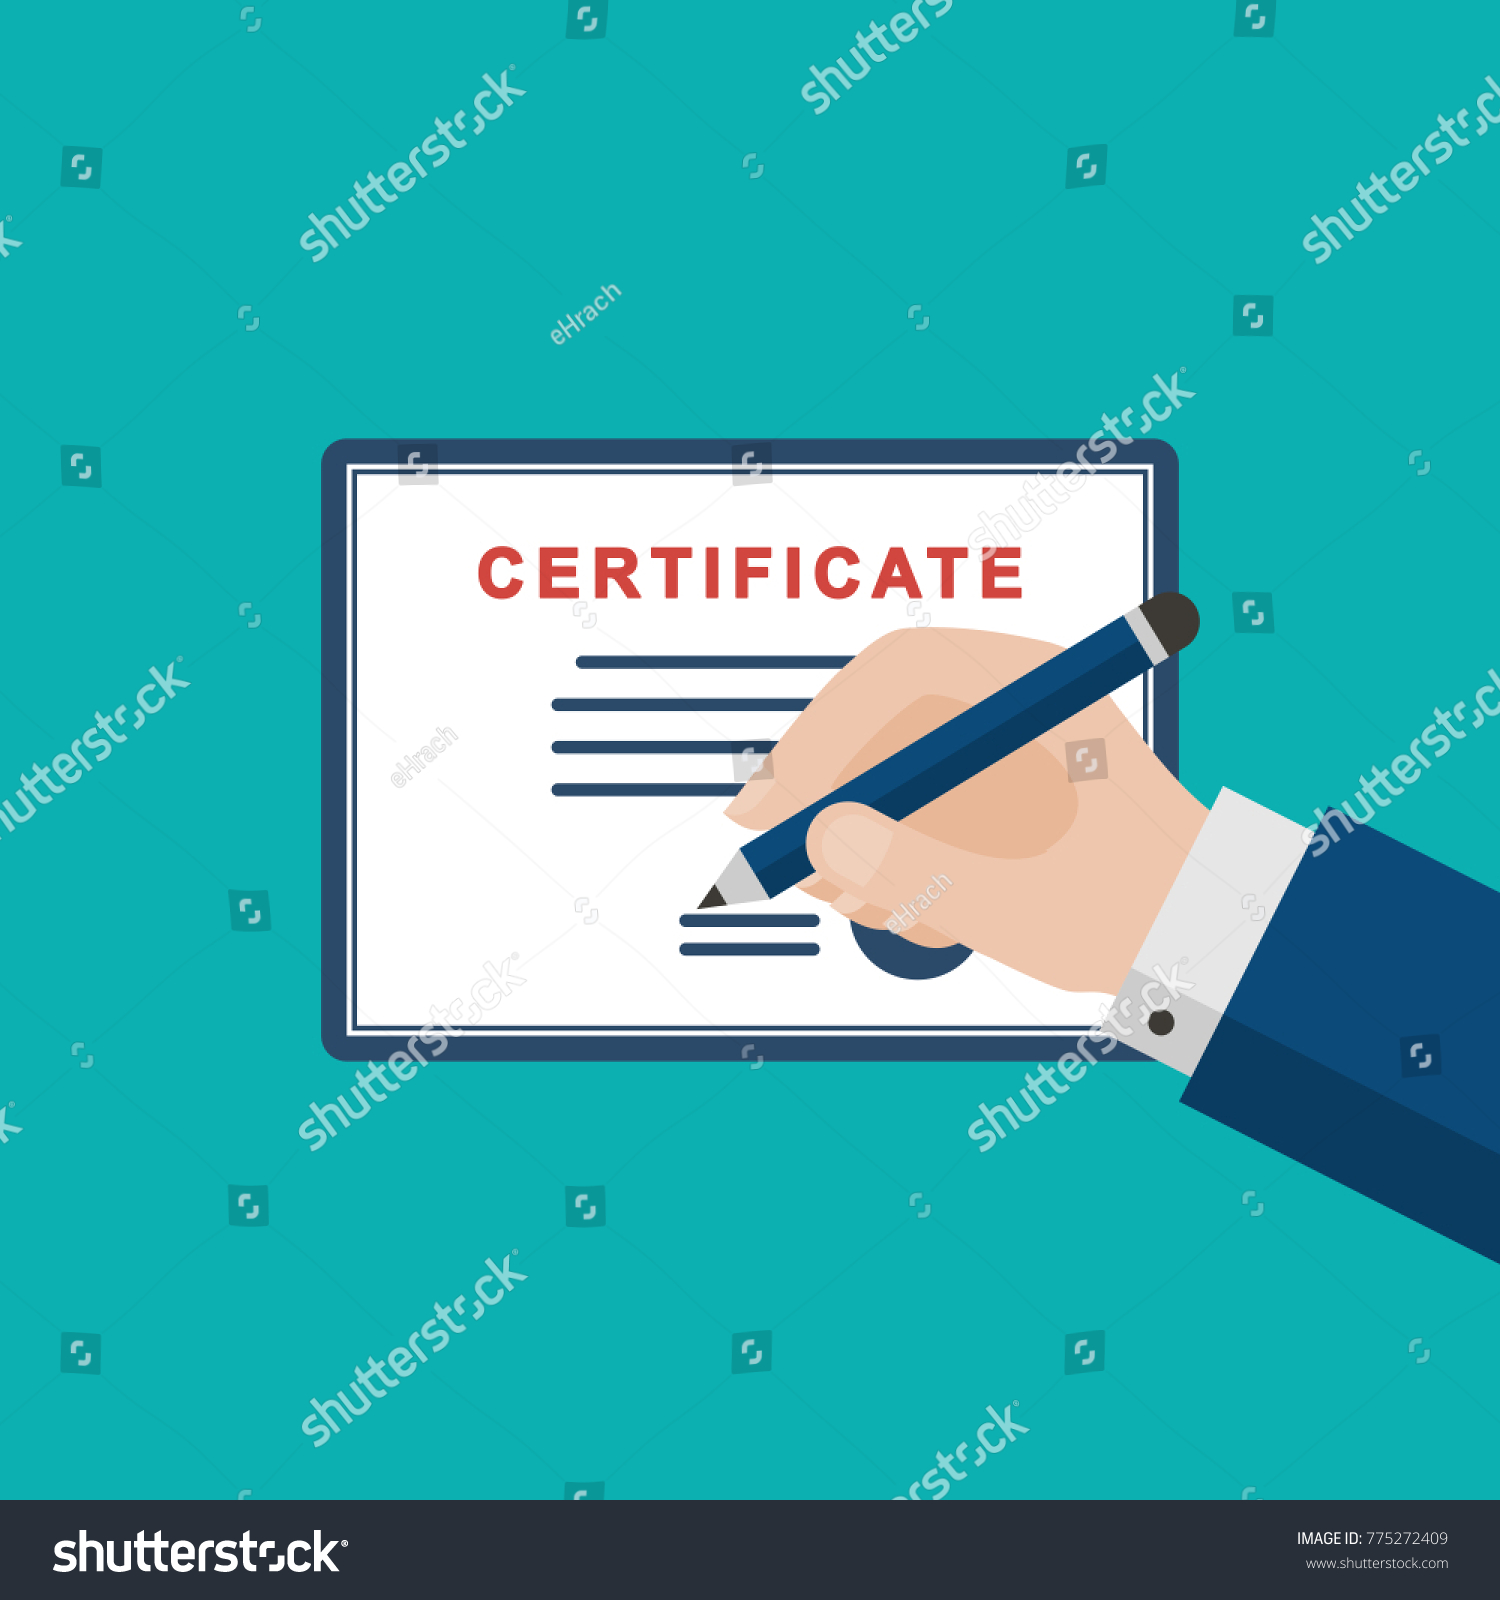 Businessman hand signing certificate diploma flat stock vector businessman hand signing certificate or diploma flat style vector illustration isolated on blue background xflitez Choice Image